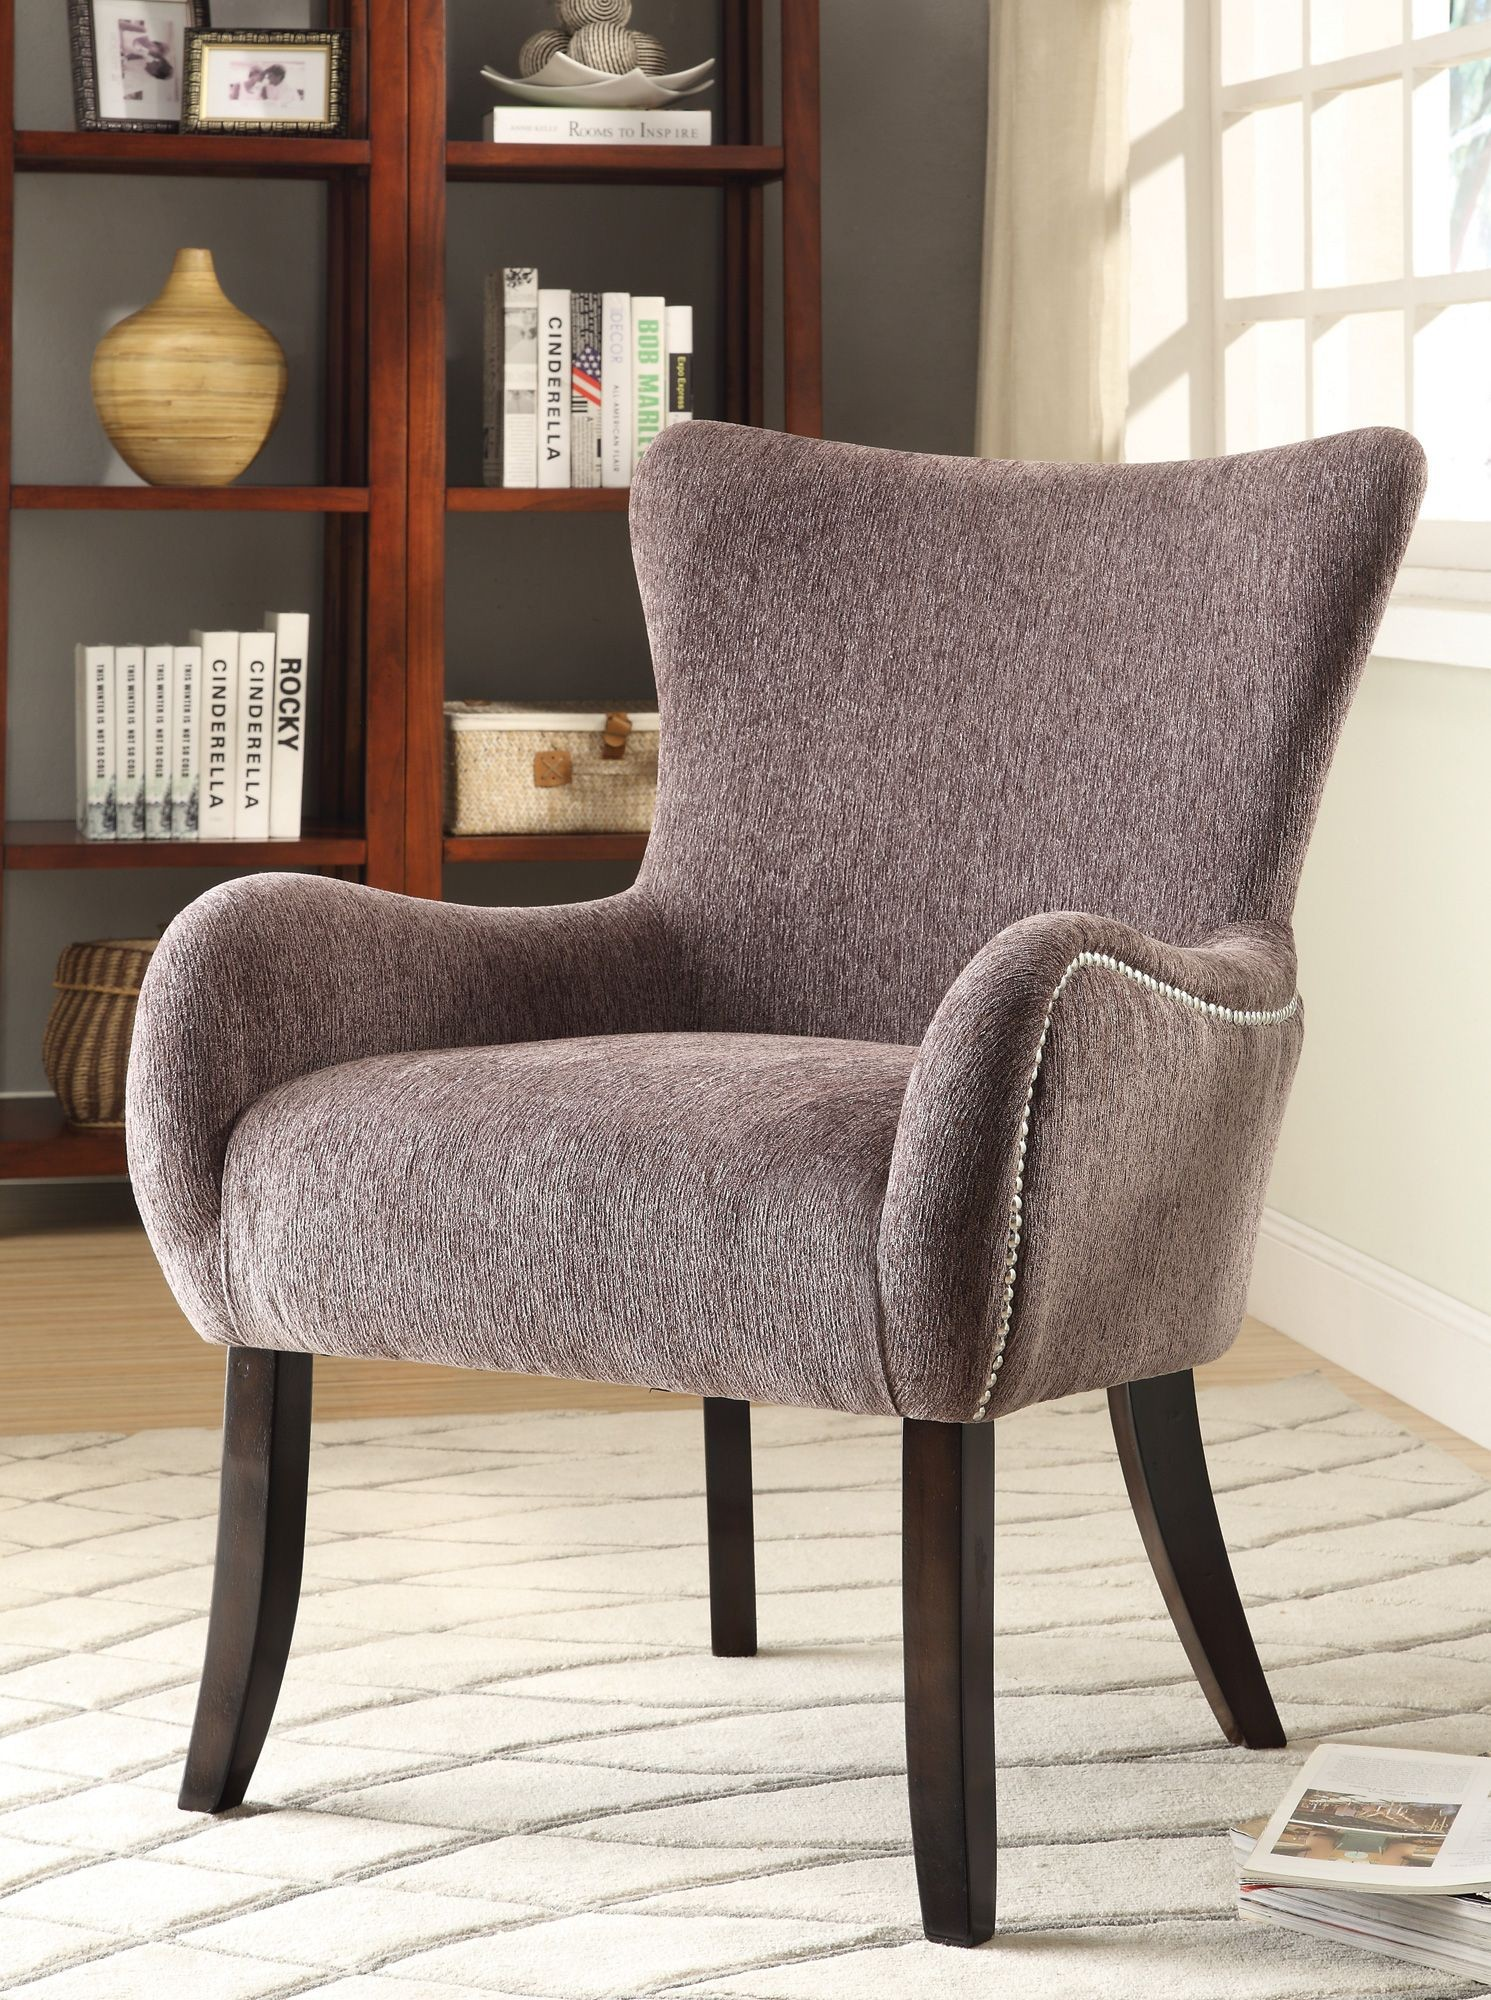 902504 Upholstered Grey Accent Chair From Coaster 902504